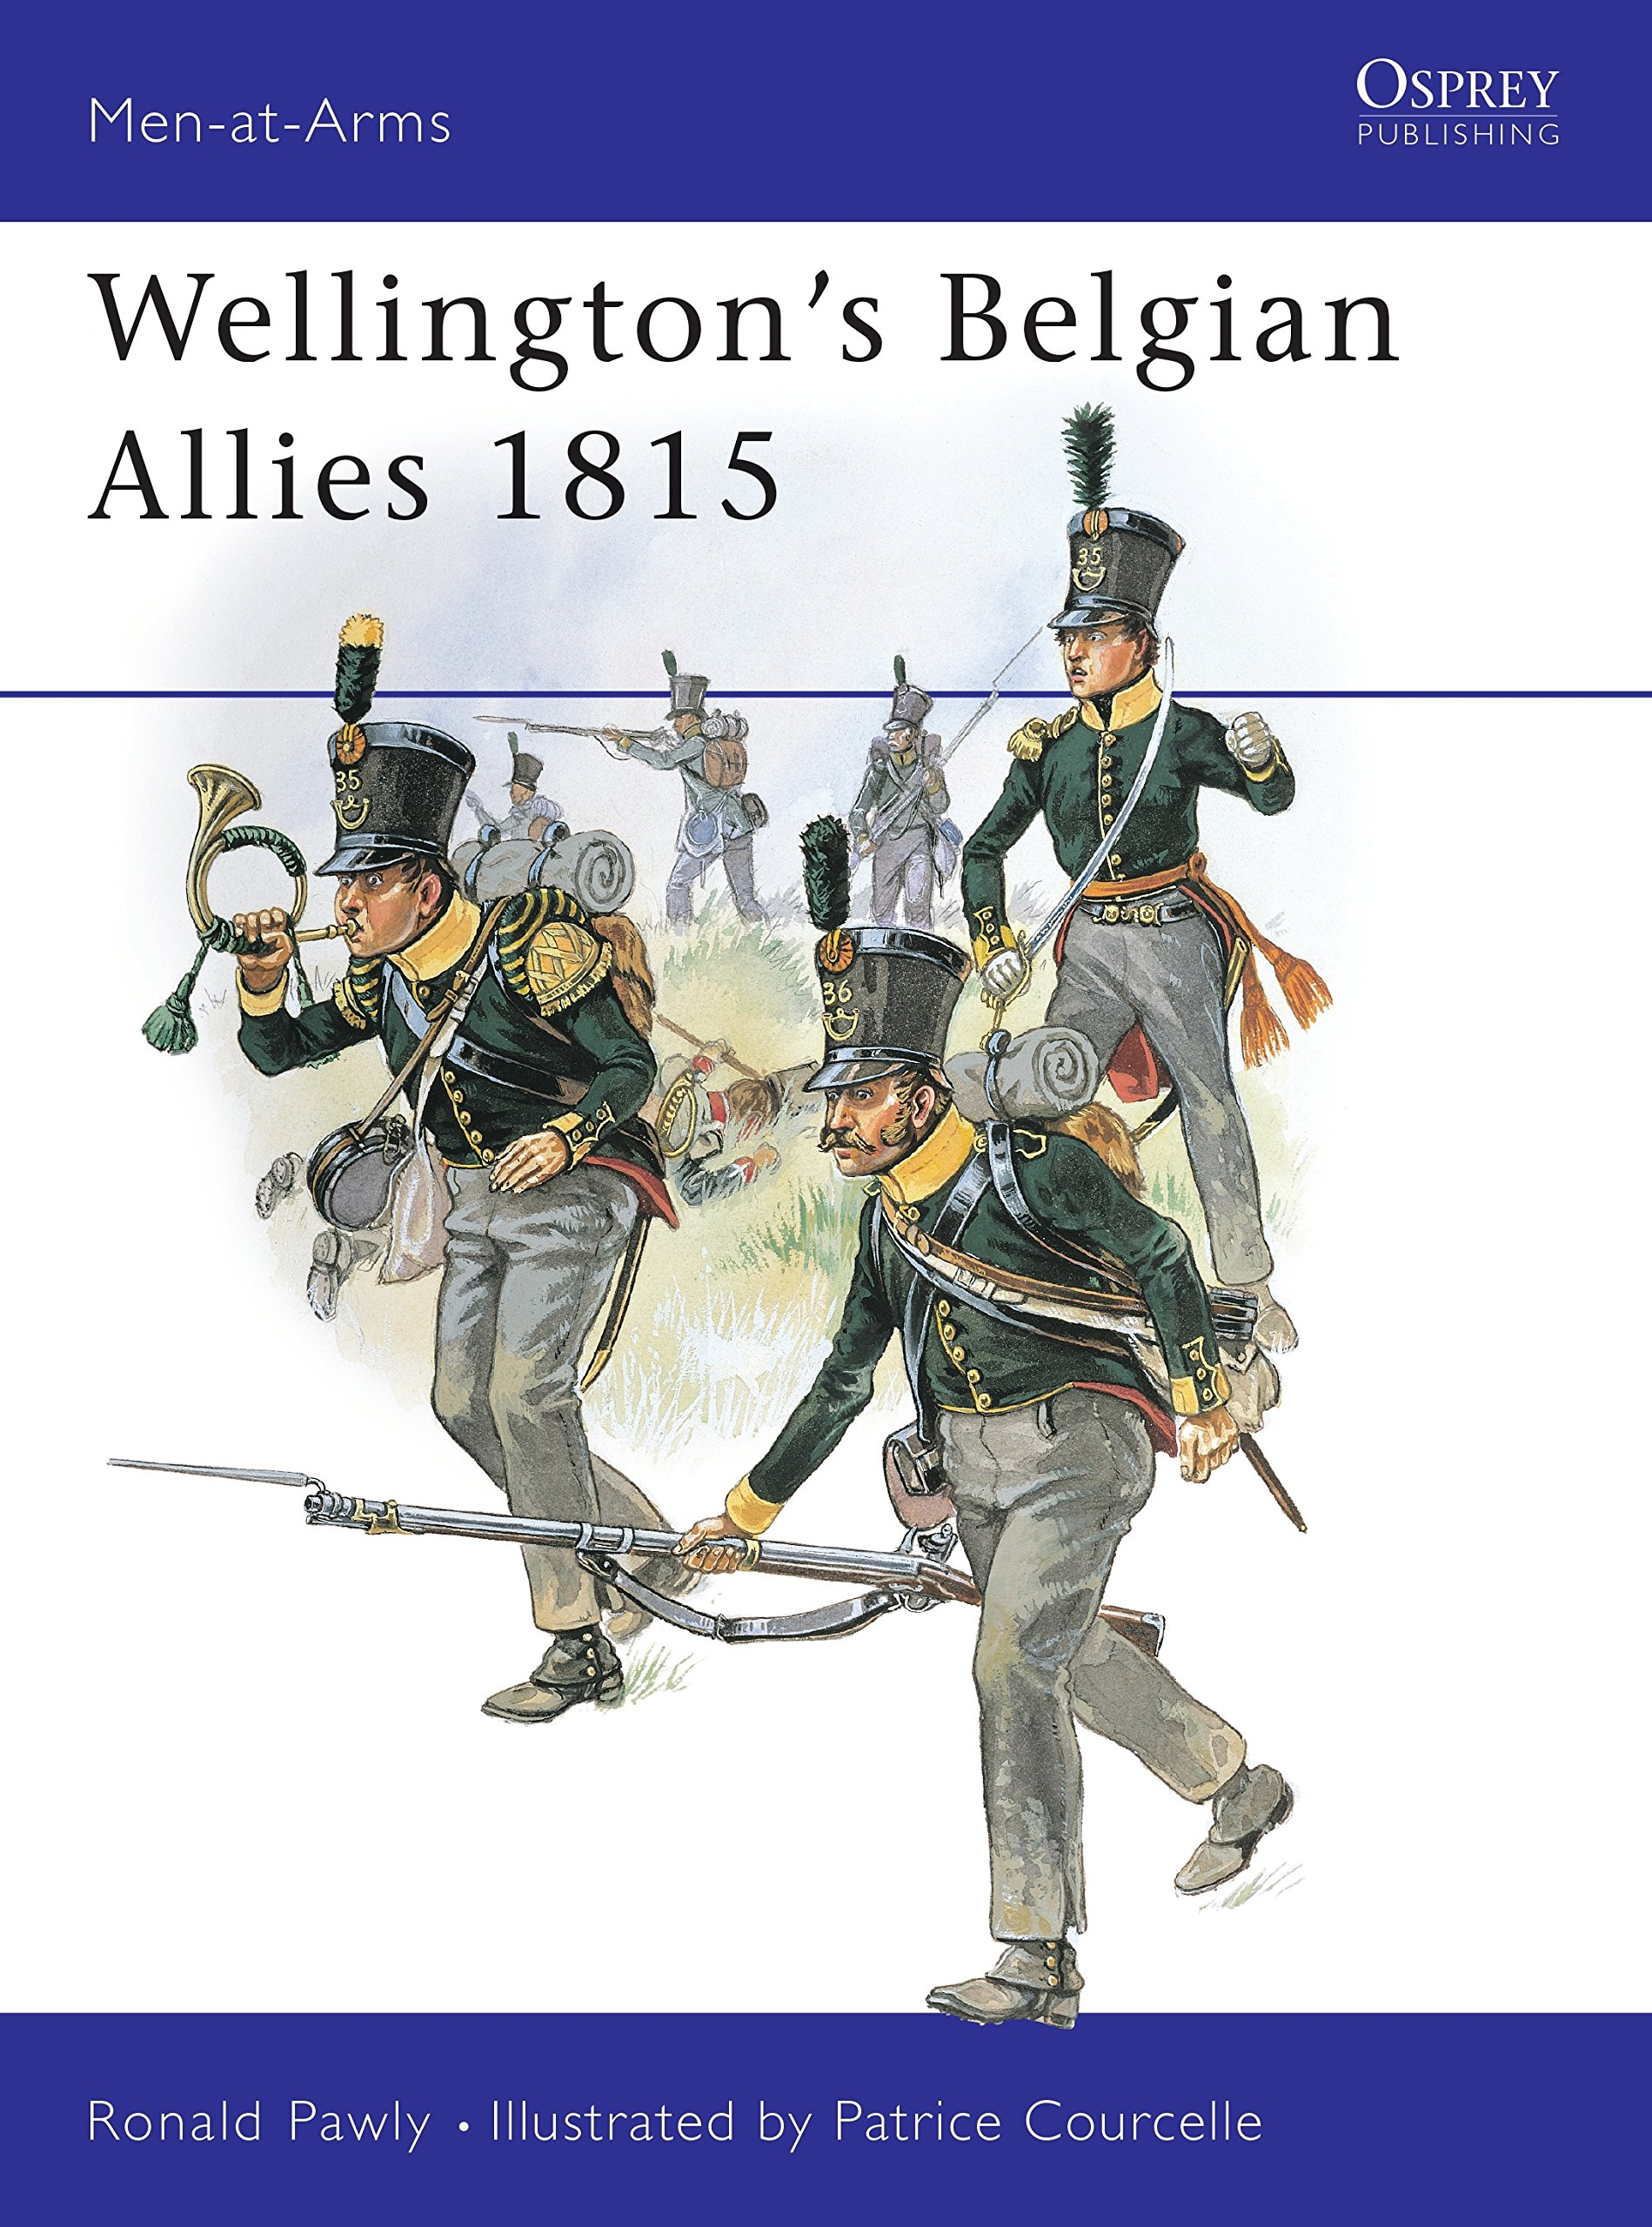 Wellingtons Belgian Allies 1815